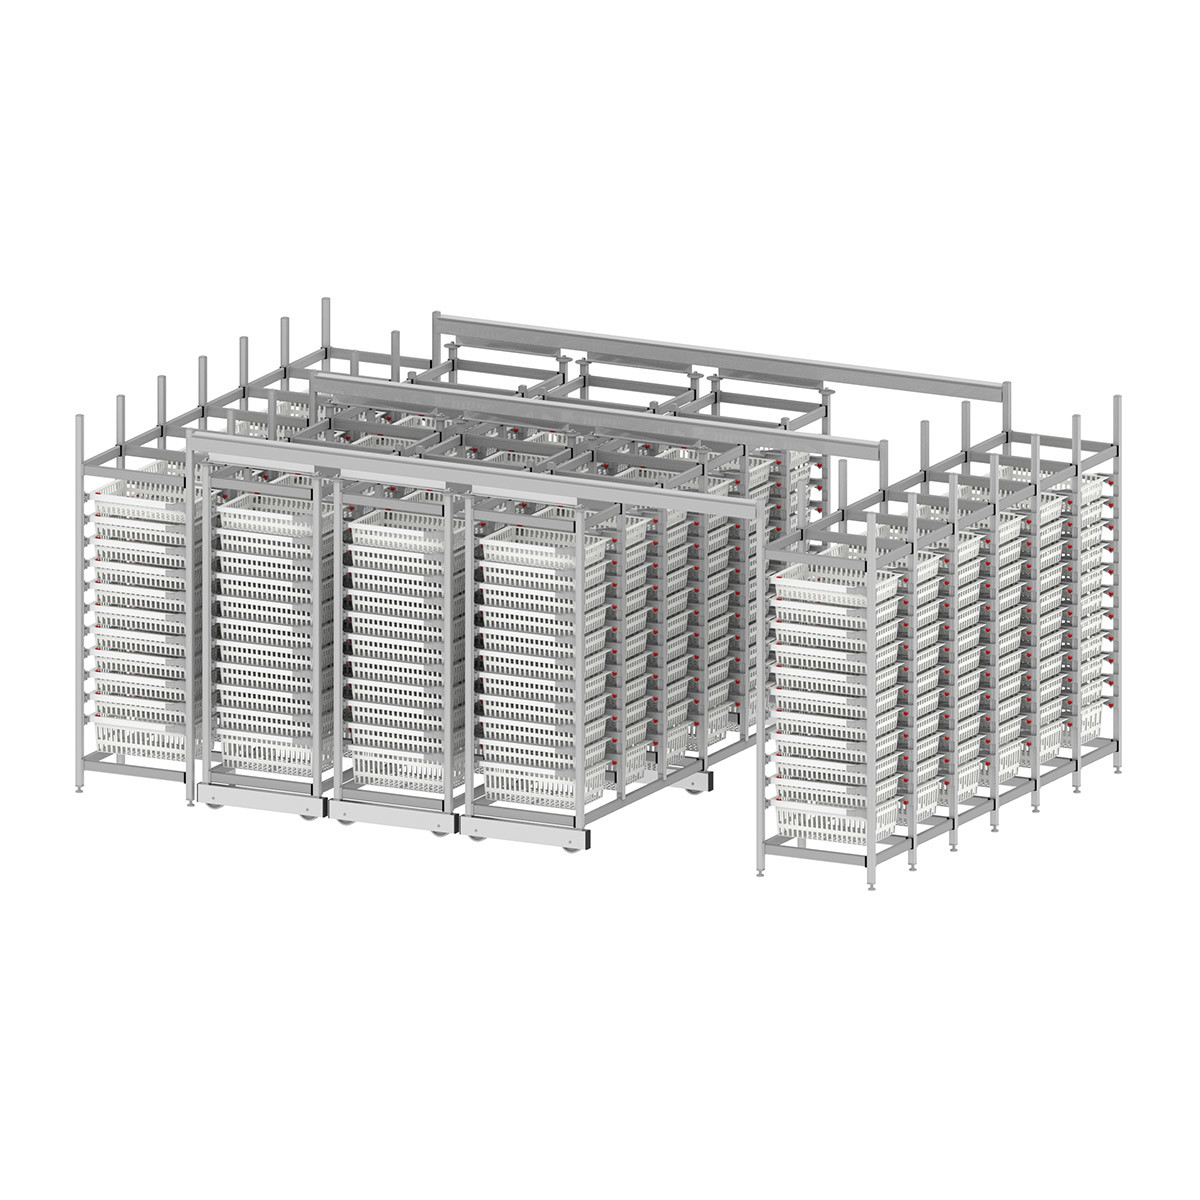 High density medical shelving